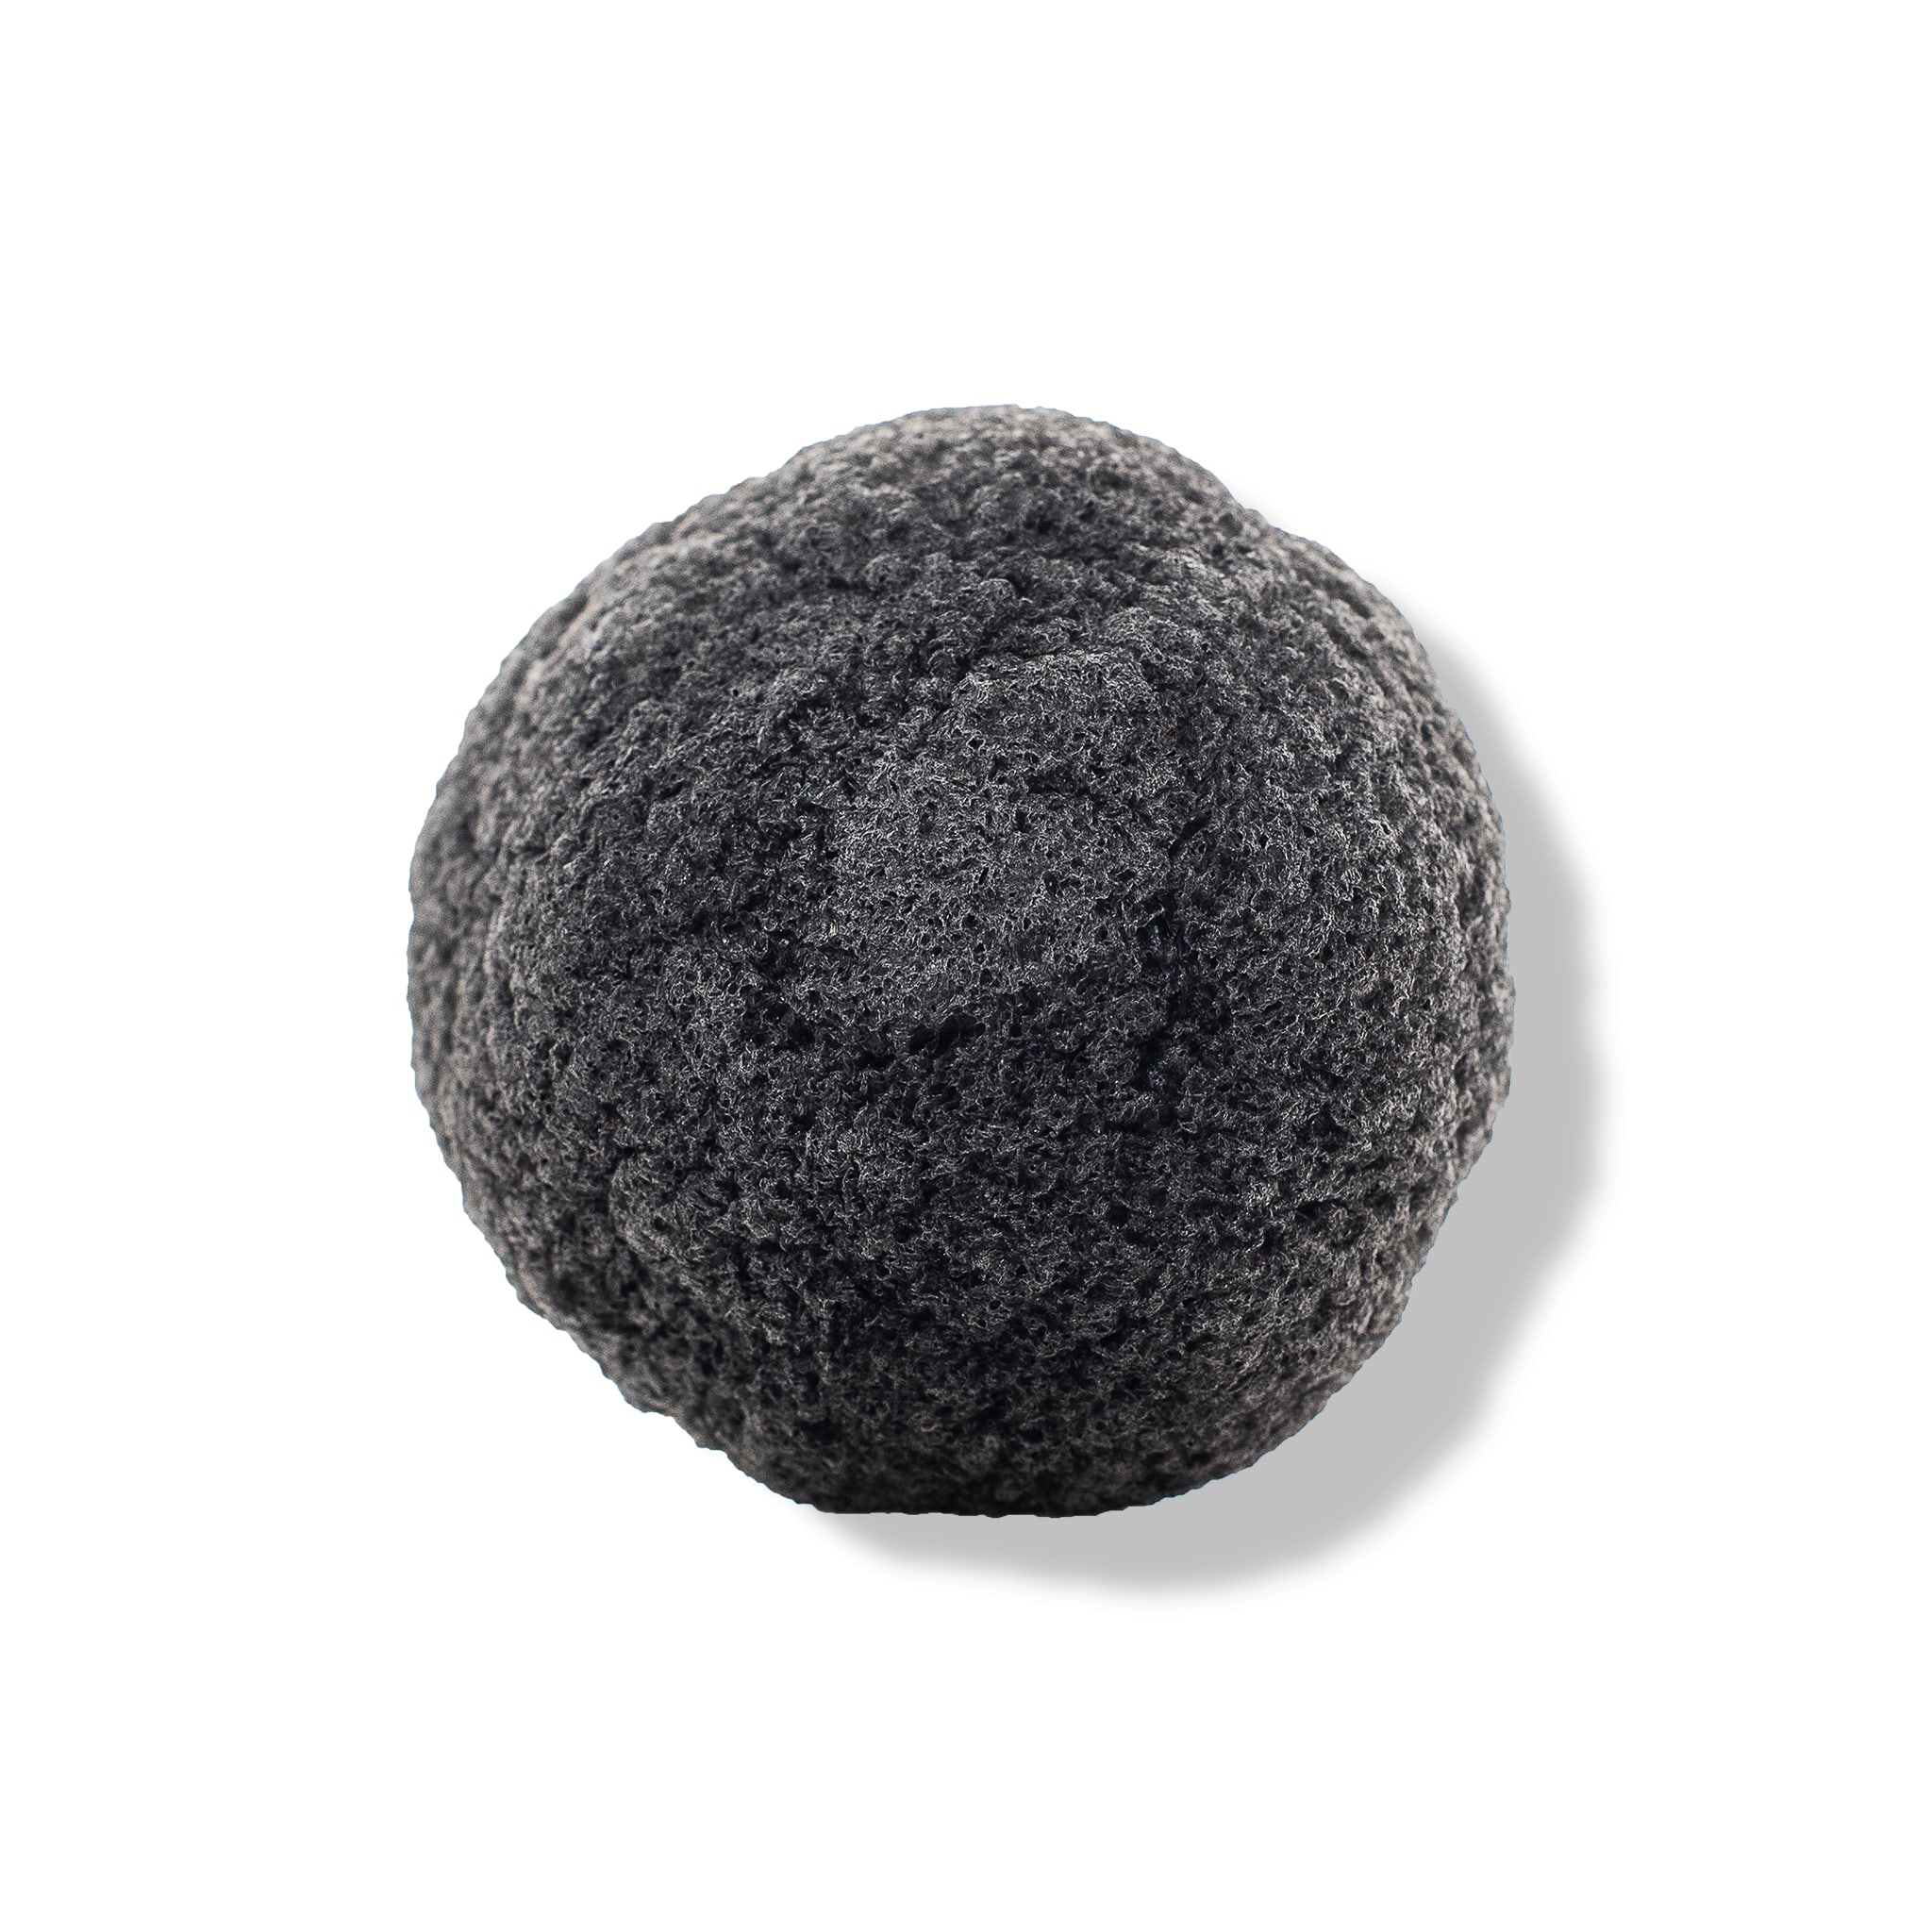 Product Grid - Charcoal Konjac Sponge